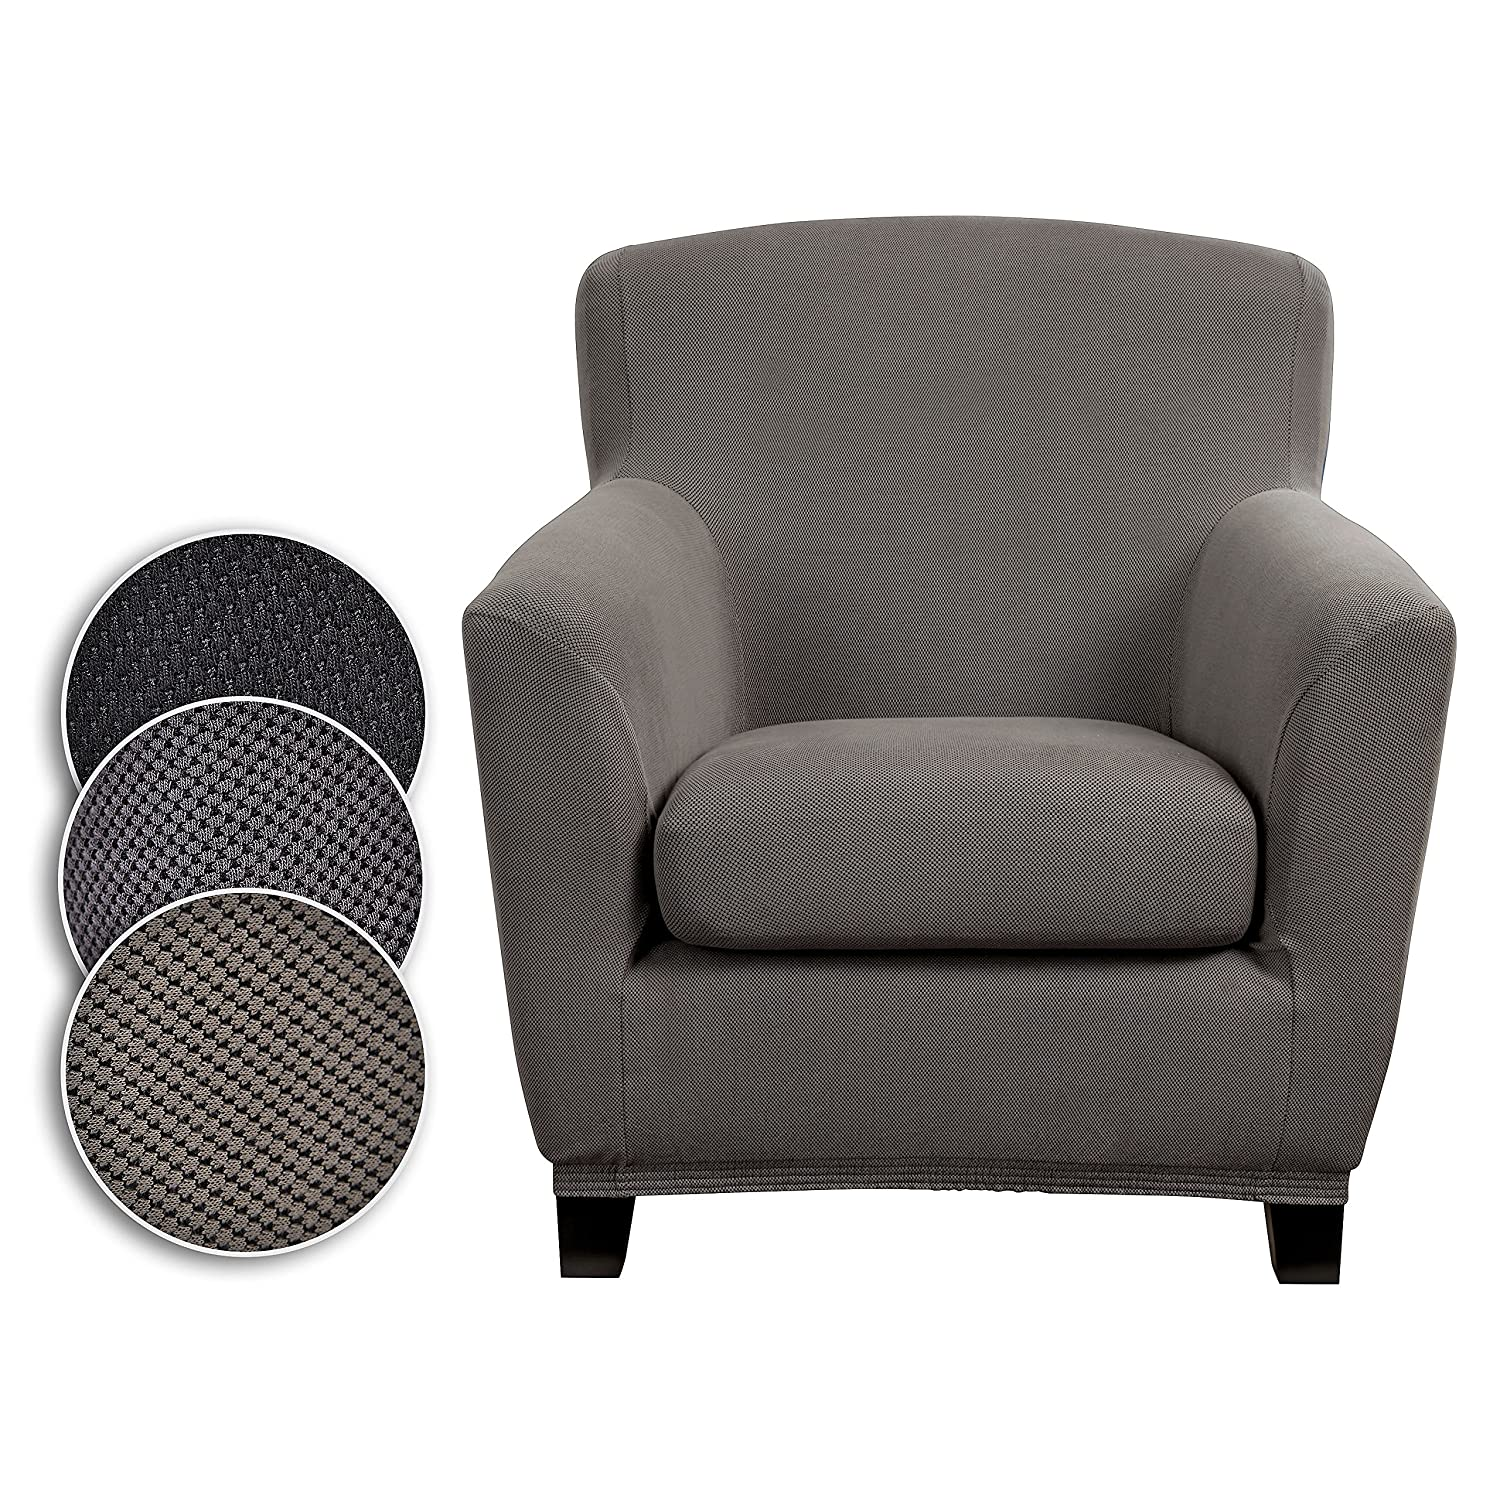 Stretch Elastic Cover black gray for 1 Seater Armchair